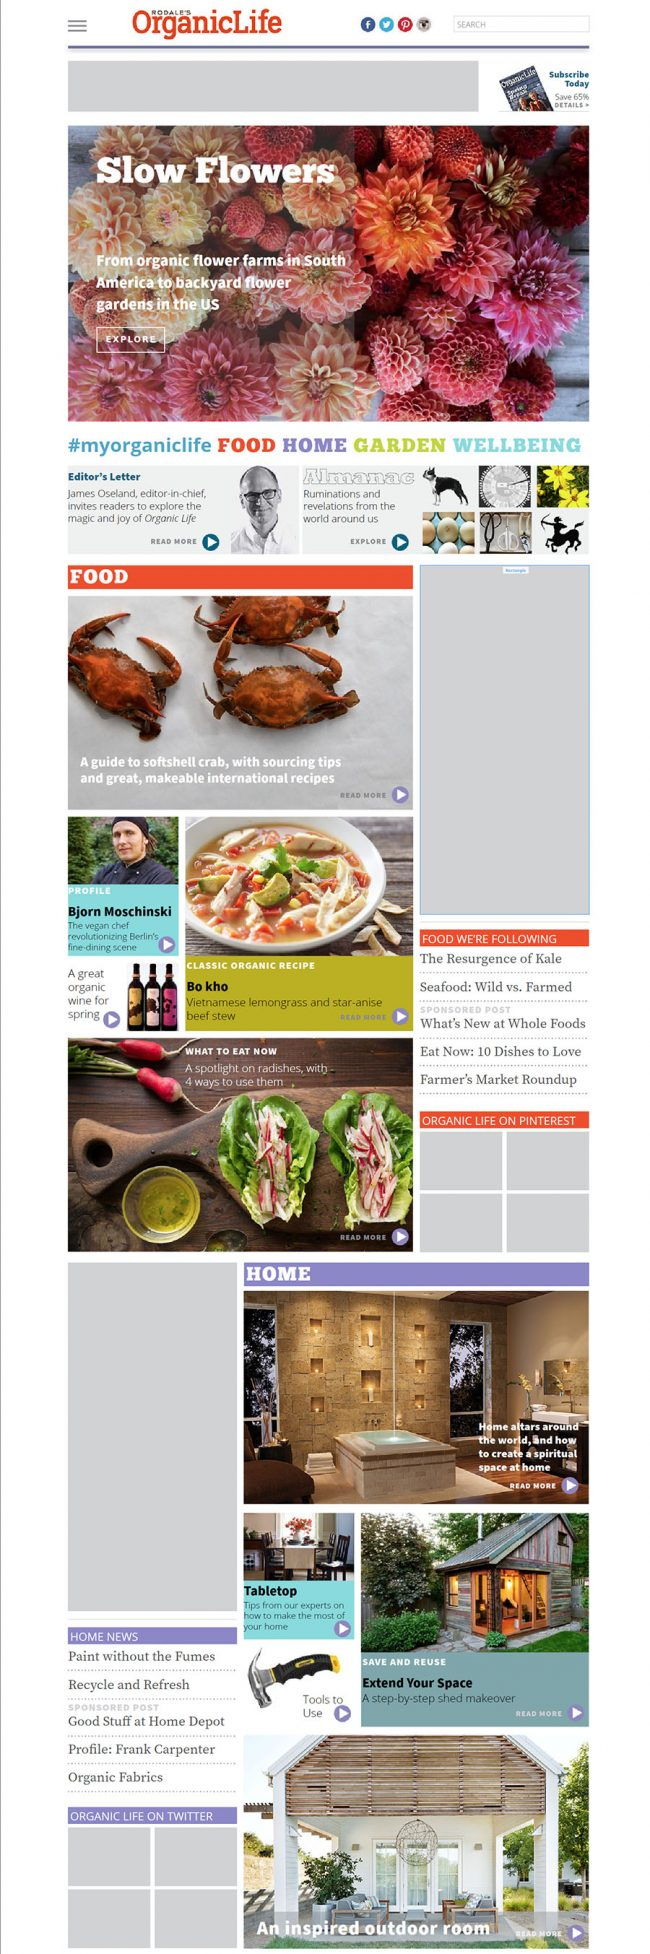 Homepage and Food page comp published live to show advertisers. This is the top half of the homepage.